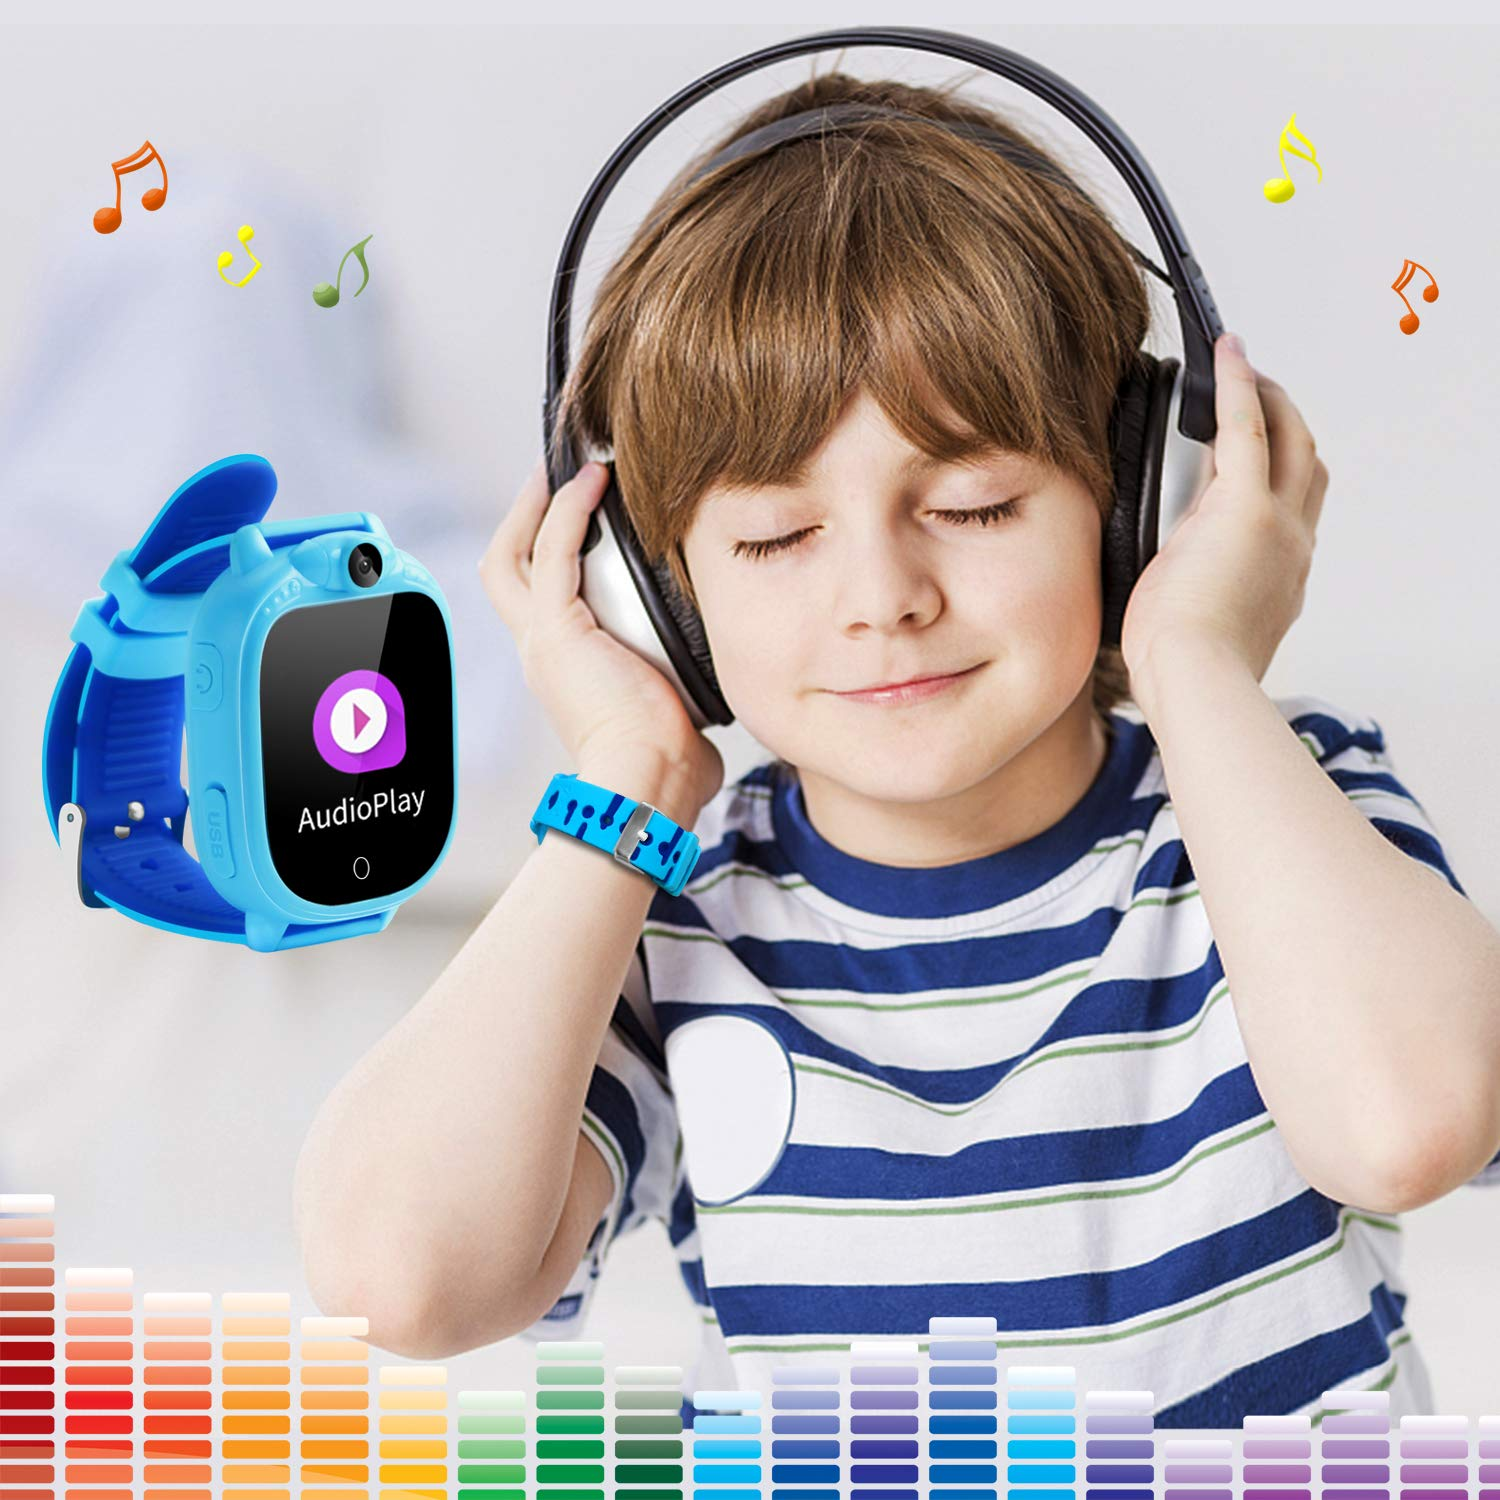 Kids Smart Game Watch with 90°Rotatable Camera Touch Screen Digital Wrist Watch Smartwatch for Boys Kids Electronic Learning Toys(Blue)